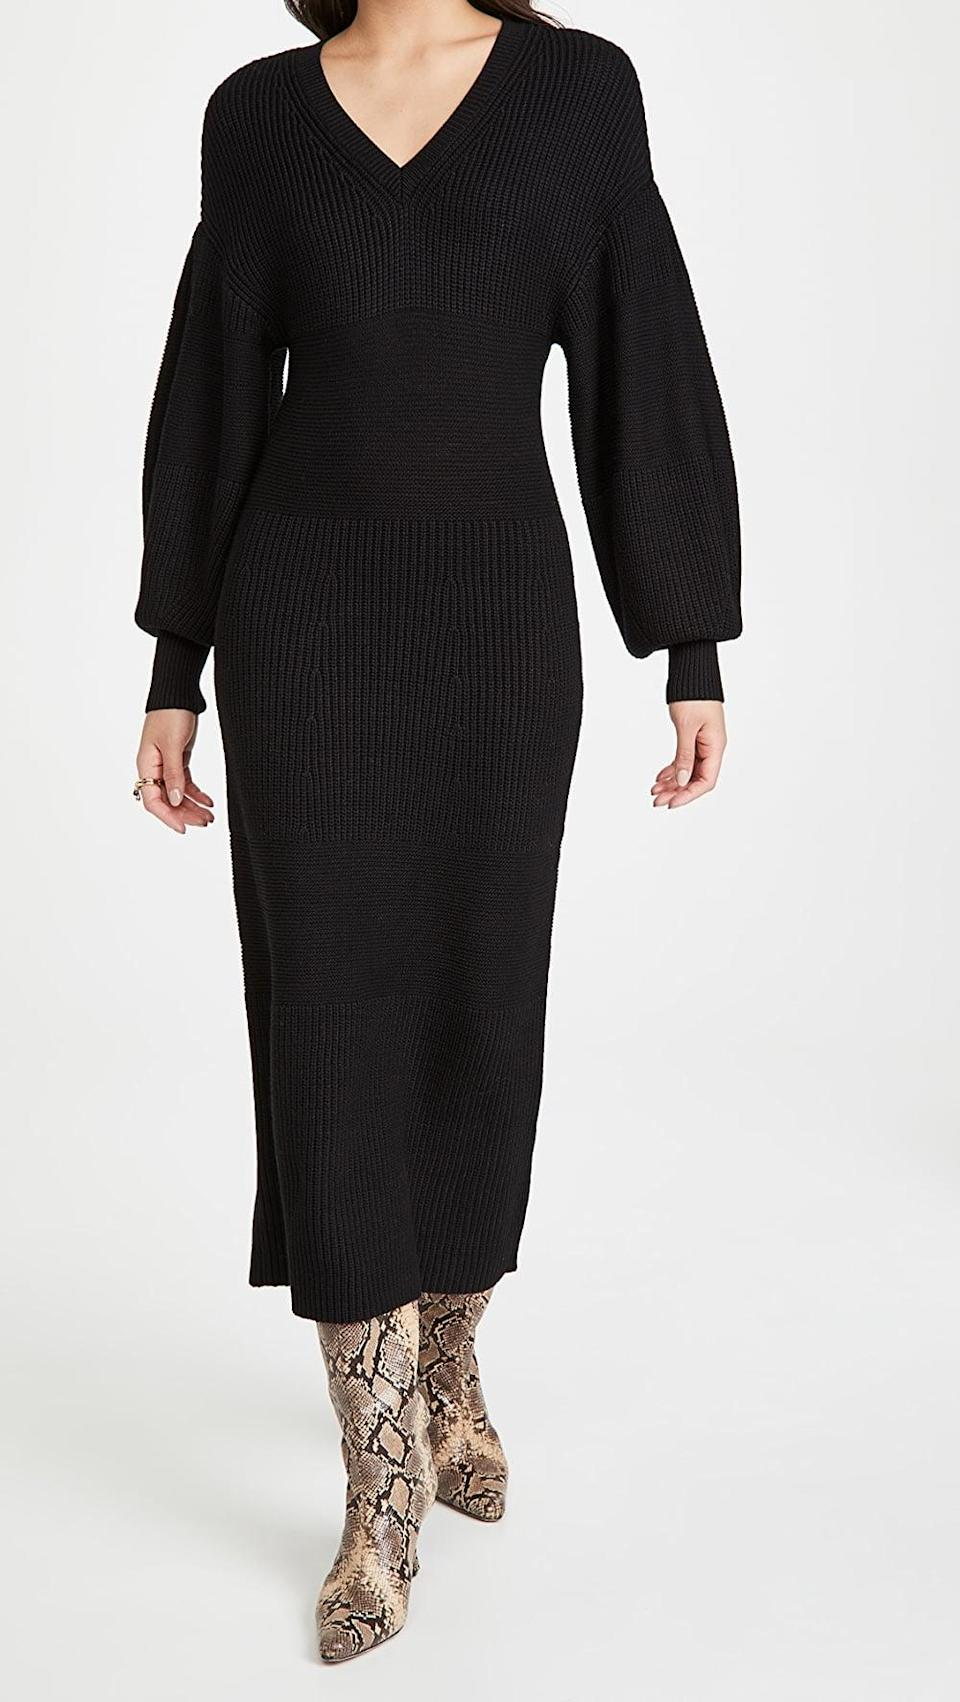 <p>This <span>Staud Carnation Dress</span> ($275) is beautiful. It comes in three colors, but you can't go wrong with basic black.</p>